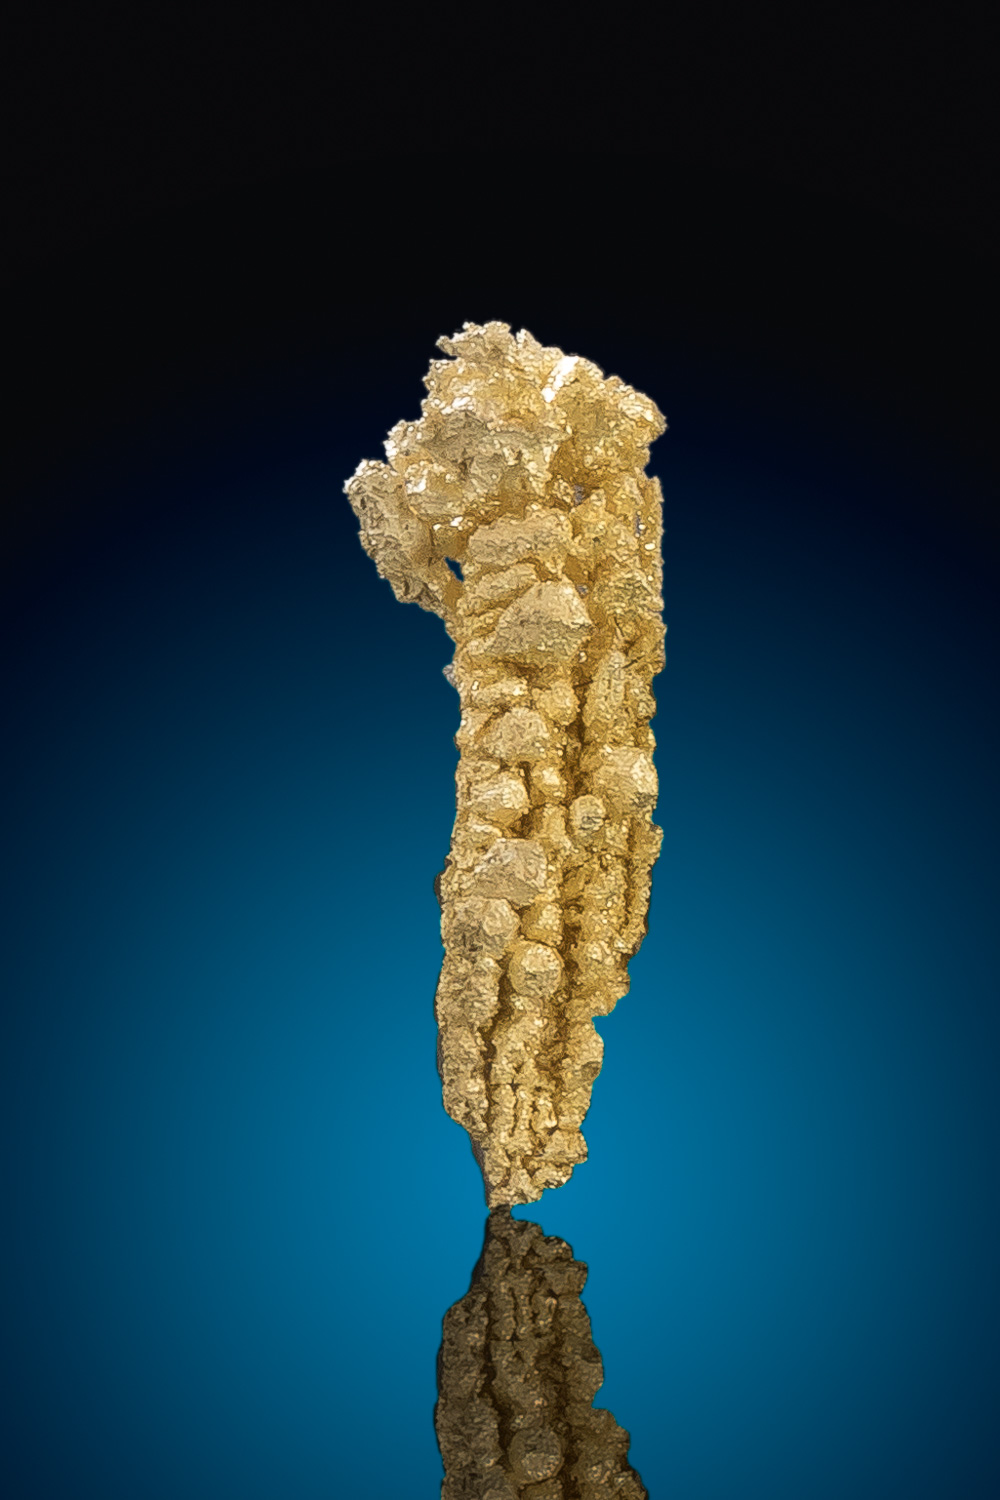 Sharp and Tapered Gold Nugget Crystal - Nevada